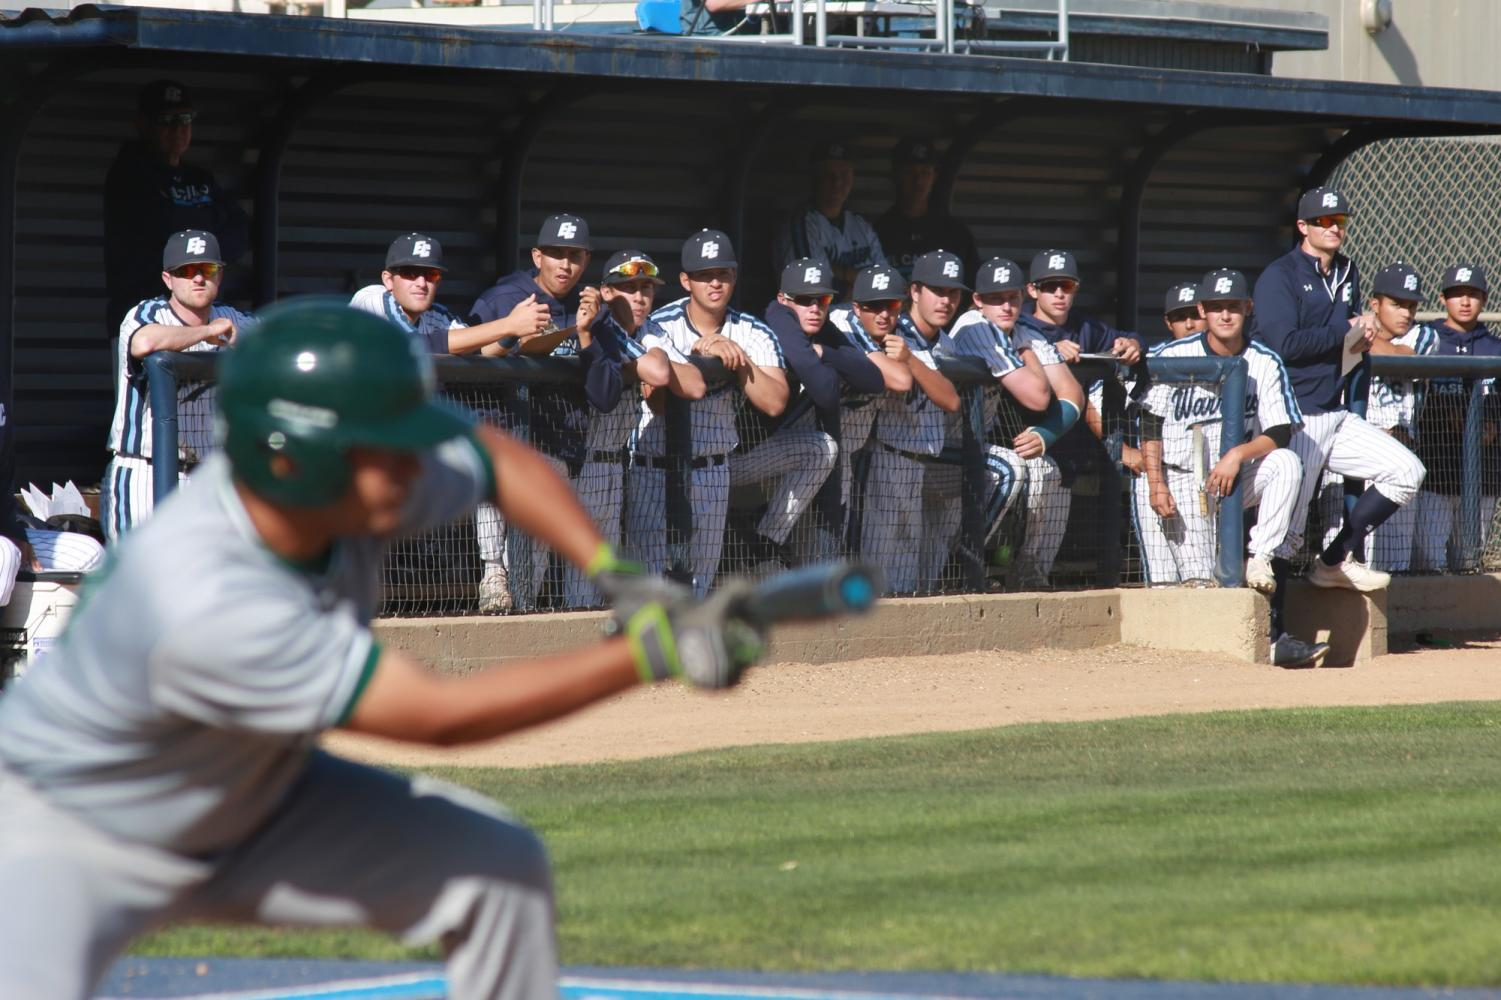 Warriors baseball vs East Los Angeles College on Tuesday, April 17 at El Camino College. Photo credit: Mari Inagaki